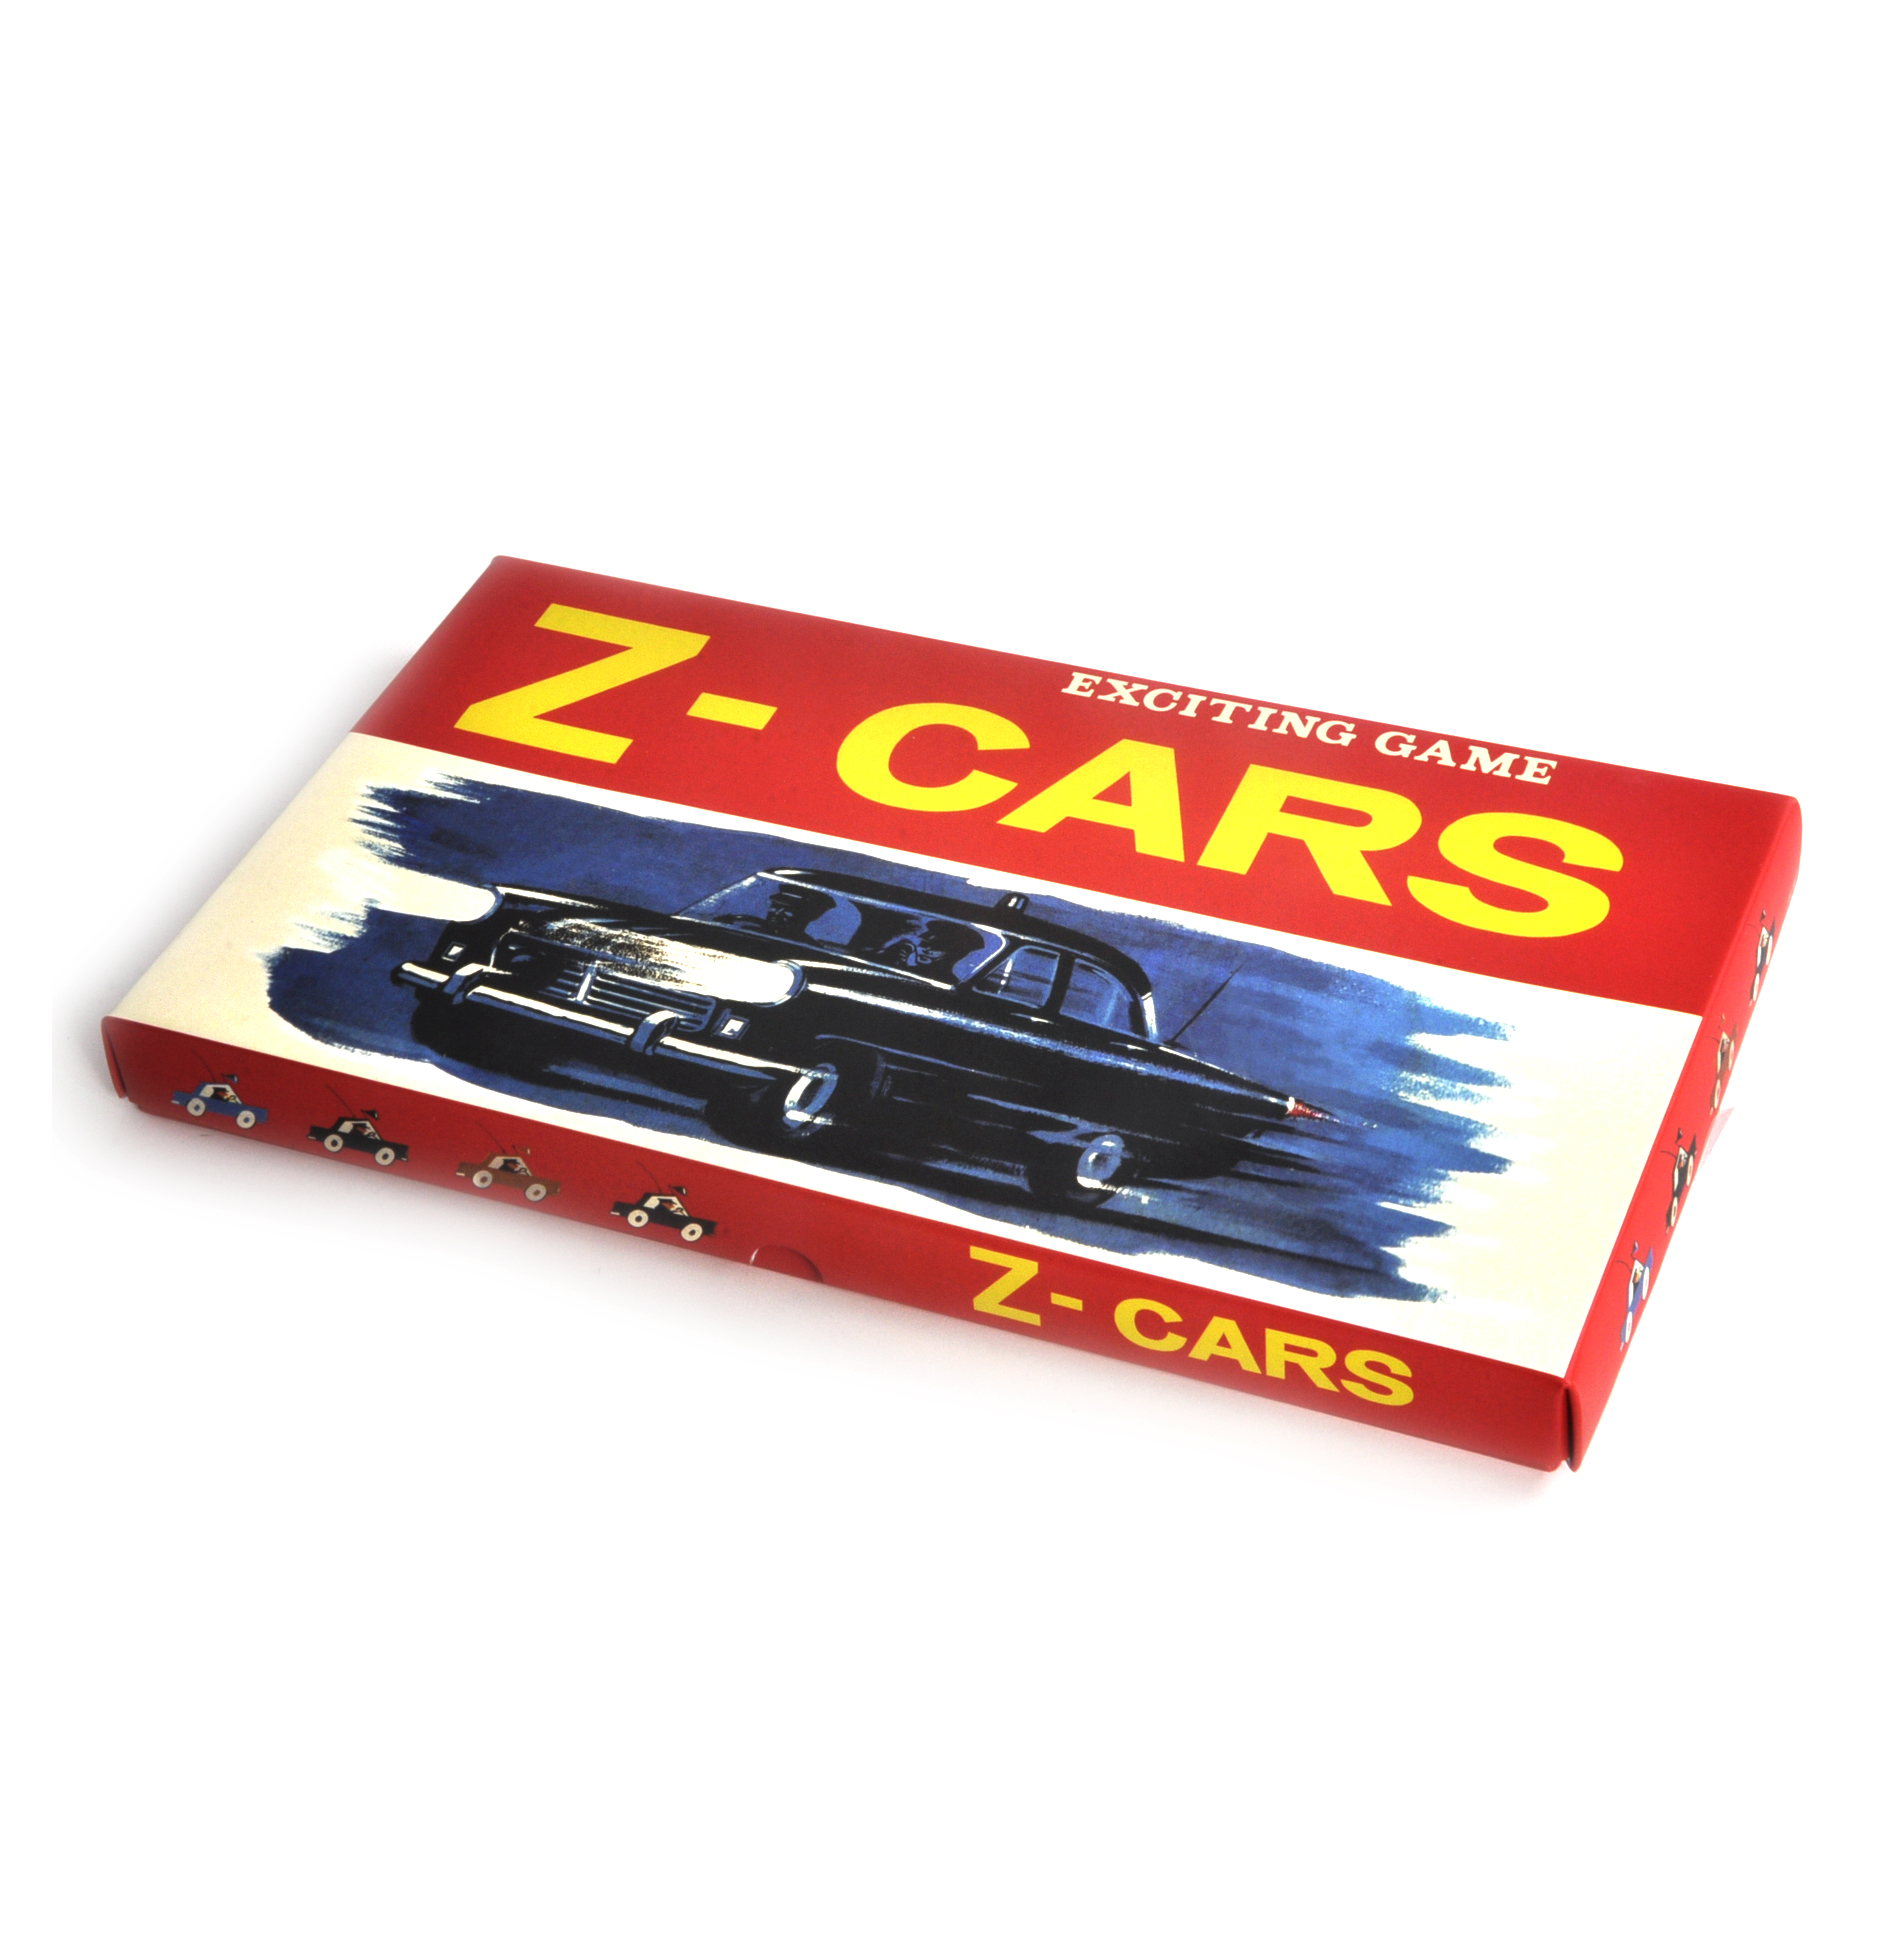 z cars the classic 1960s tv series retro board game ebay. Black Bedroom Furniture Sets. Home Design Ideas